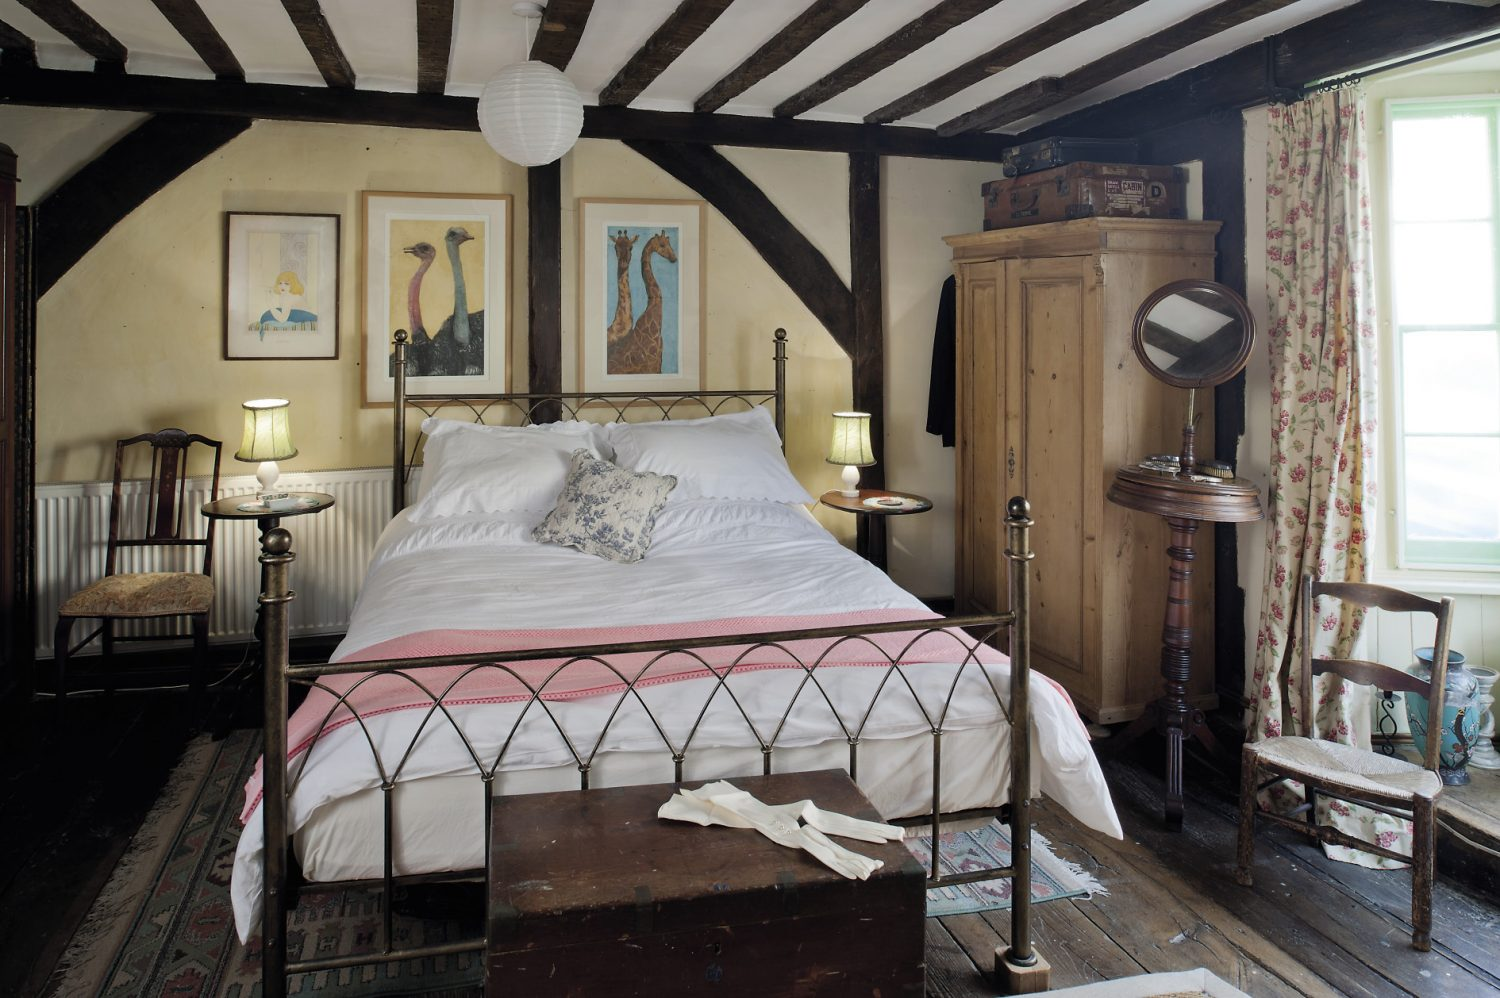 On the wall above the gothic style iron bed in the guest bedroom there are two paintings of an ostrich and giraffe by artist Tor Hilyard